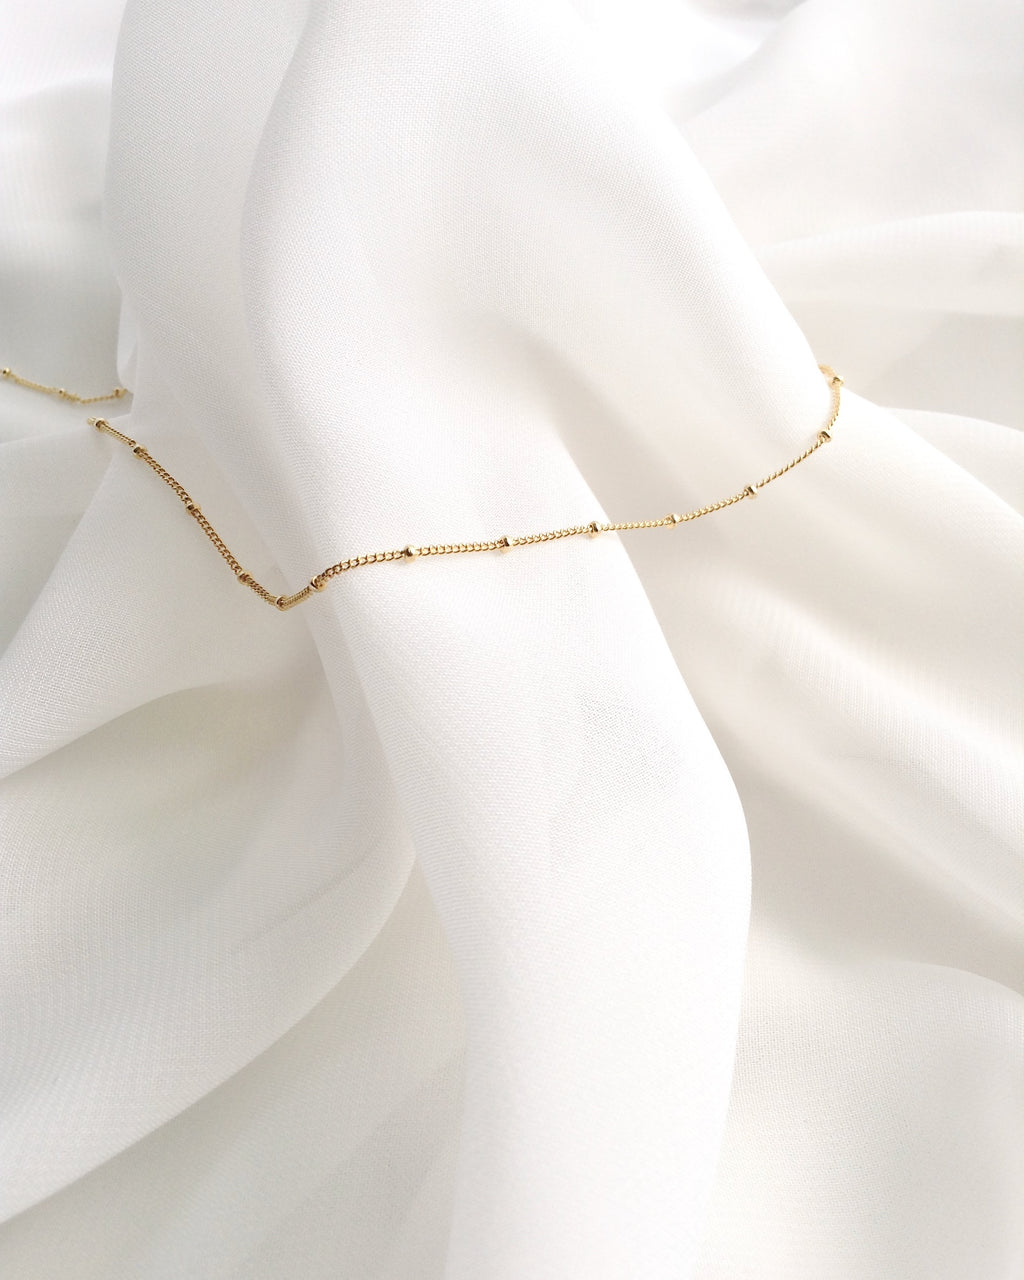 Delicate Anklet | Simple Dainty Anklet in Gold Filled or Sterling Silver | IB Jewelry